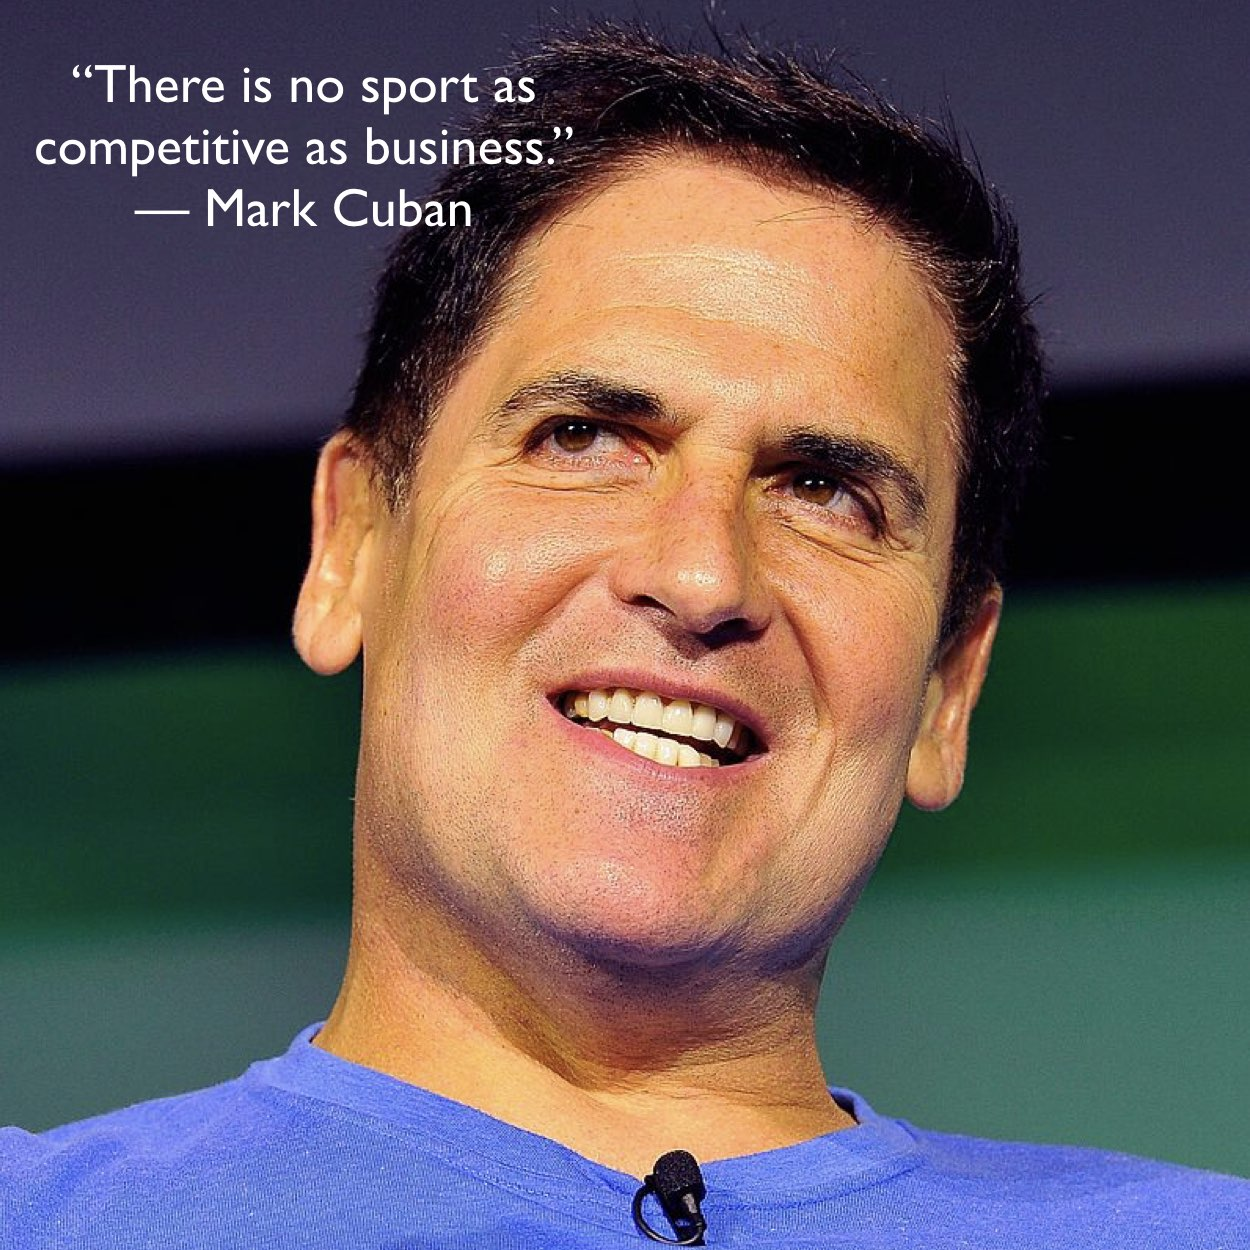 Why Benchmark Your Performance? Mark Cuban Makes A Compelling Case  In A Single Sentence